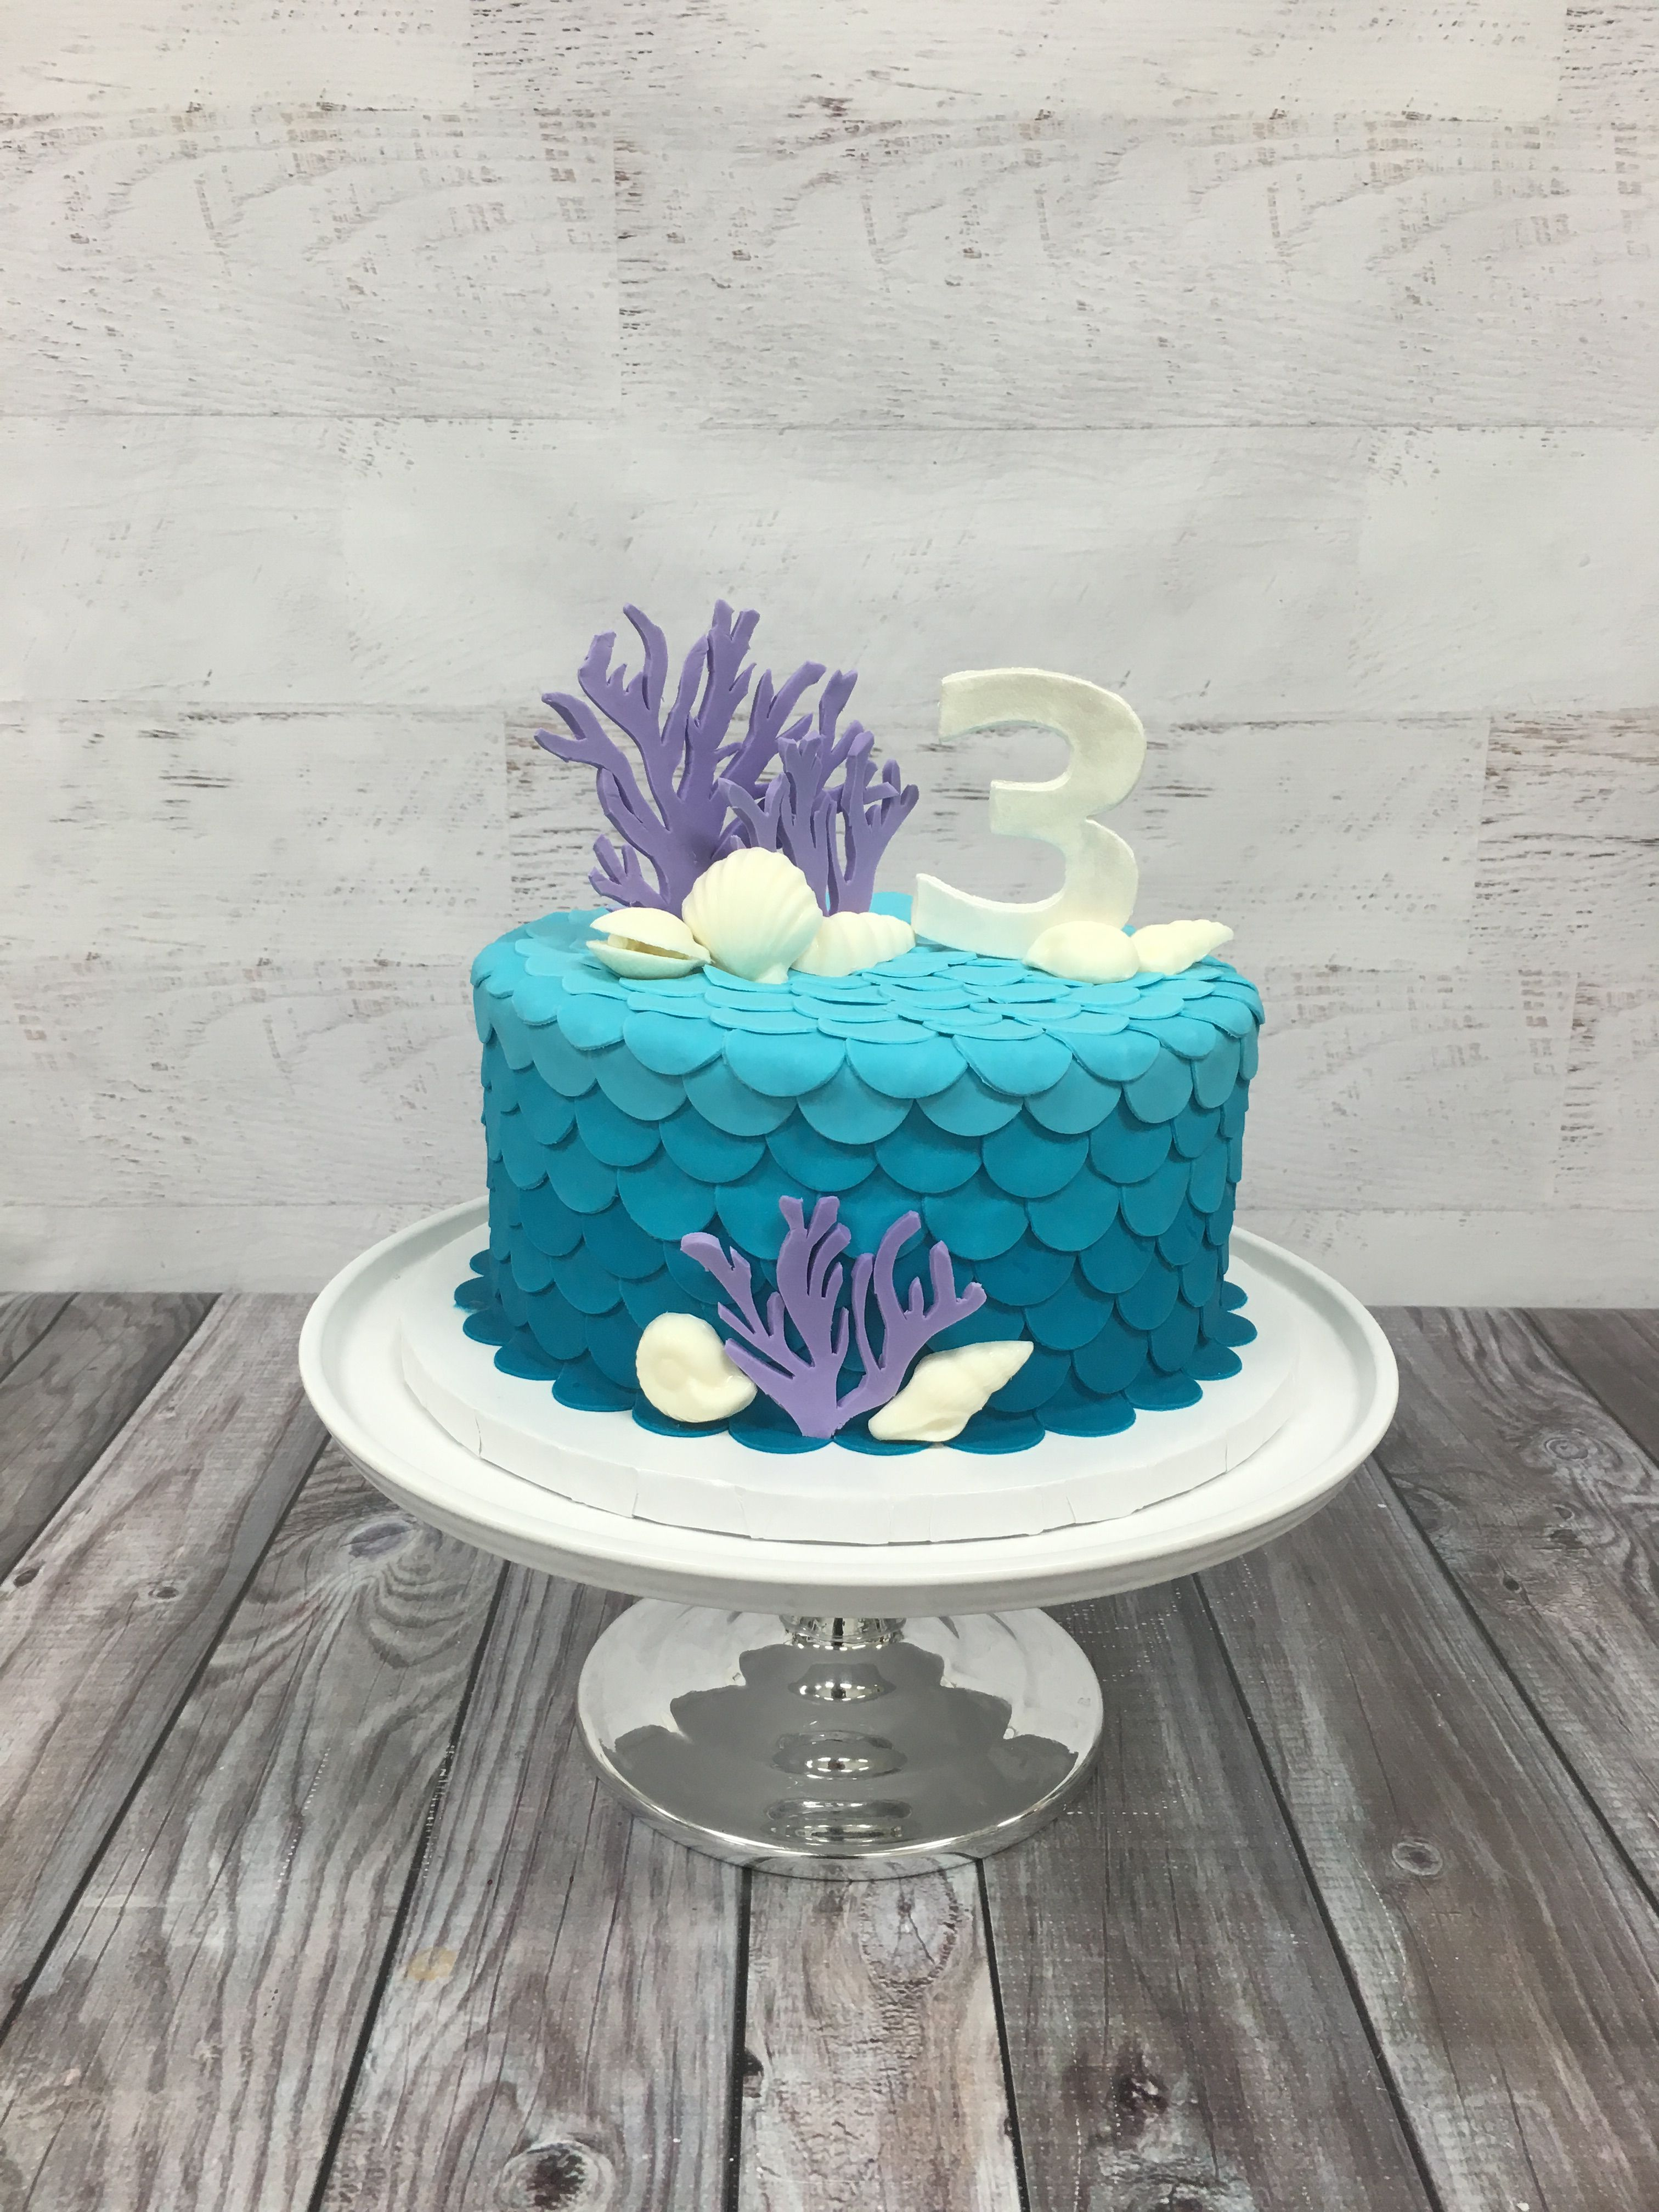 Cake image by edible art cake shop on cakes childrens